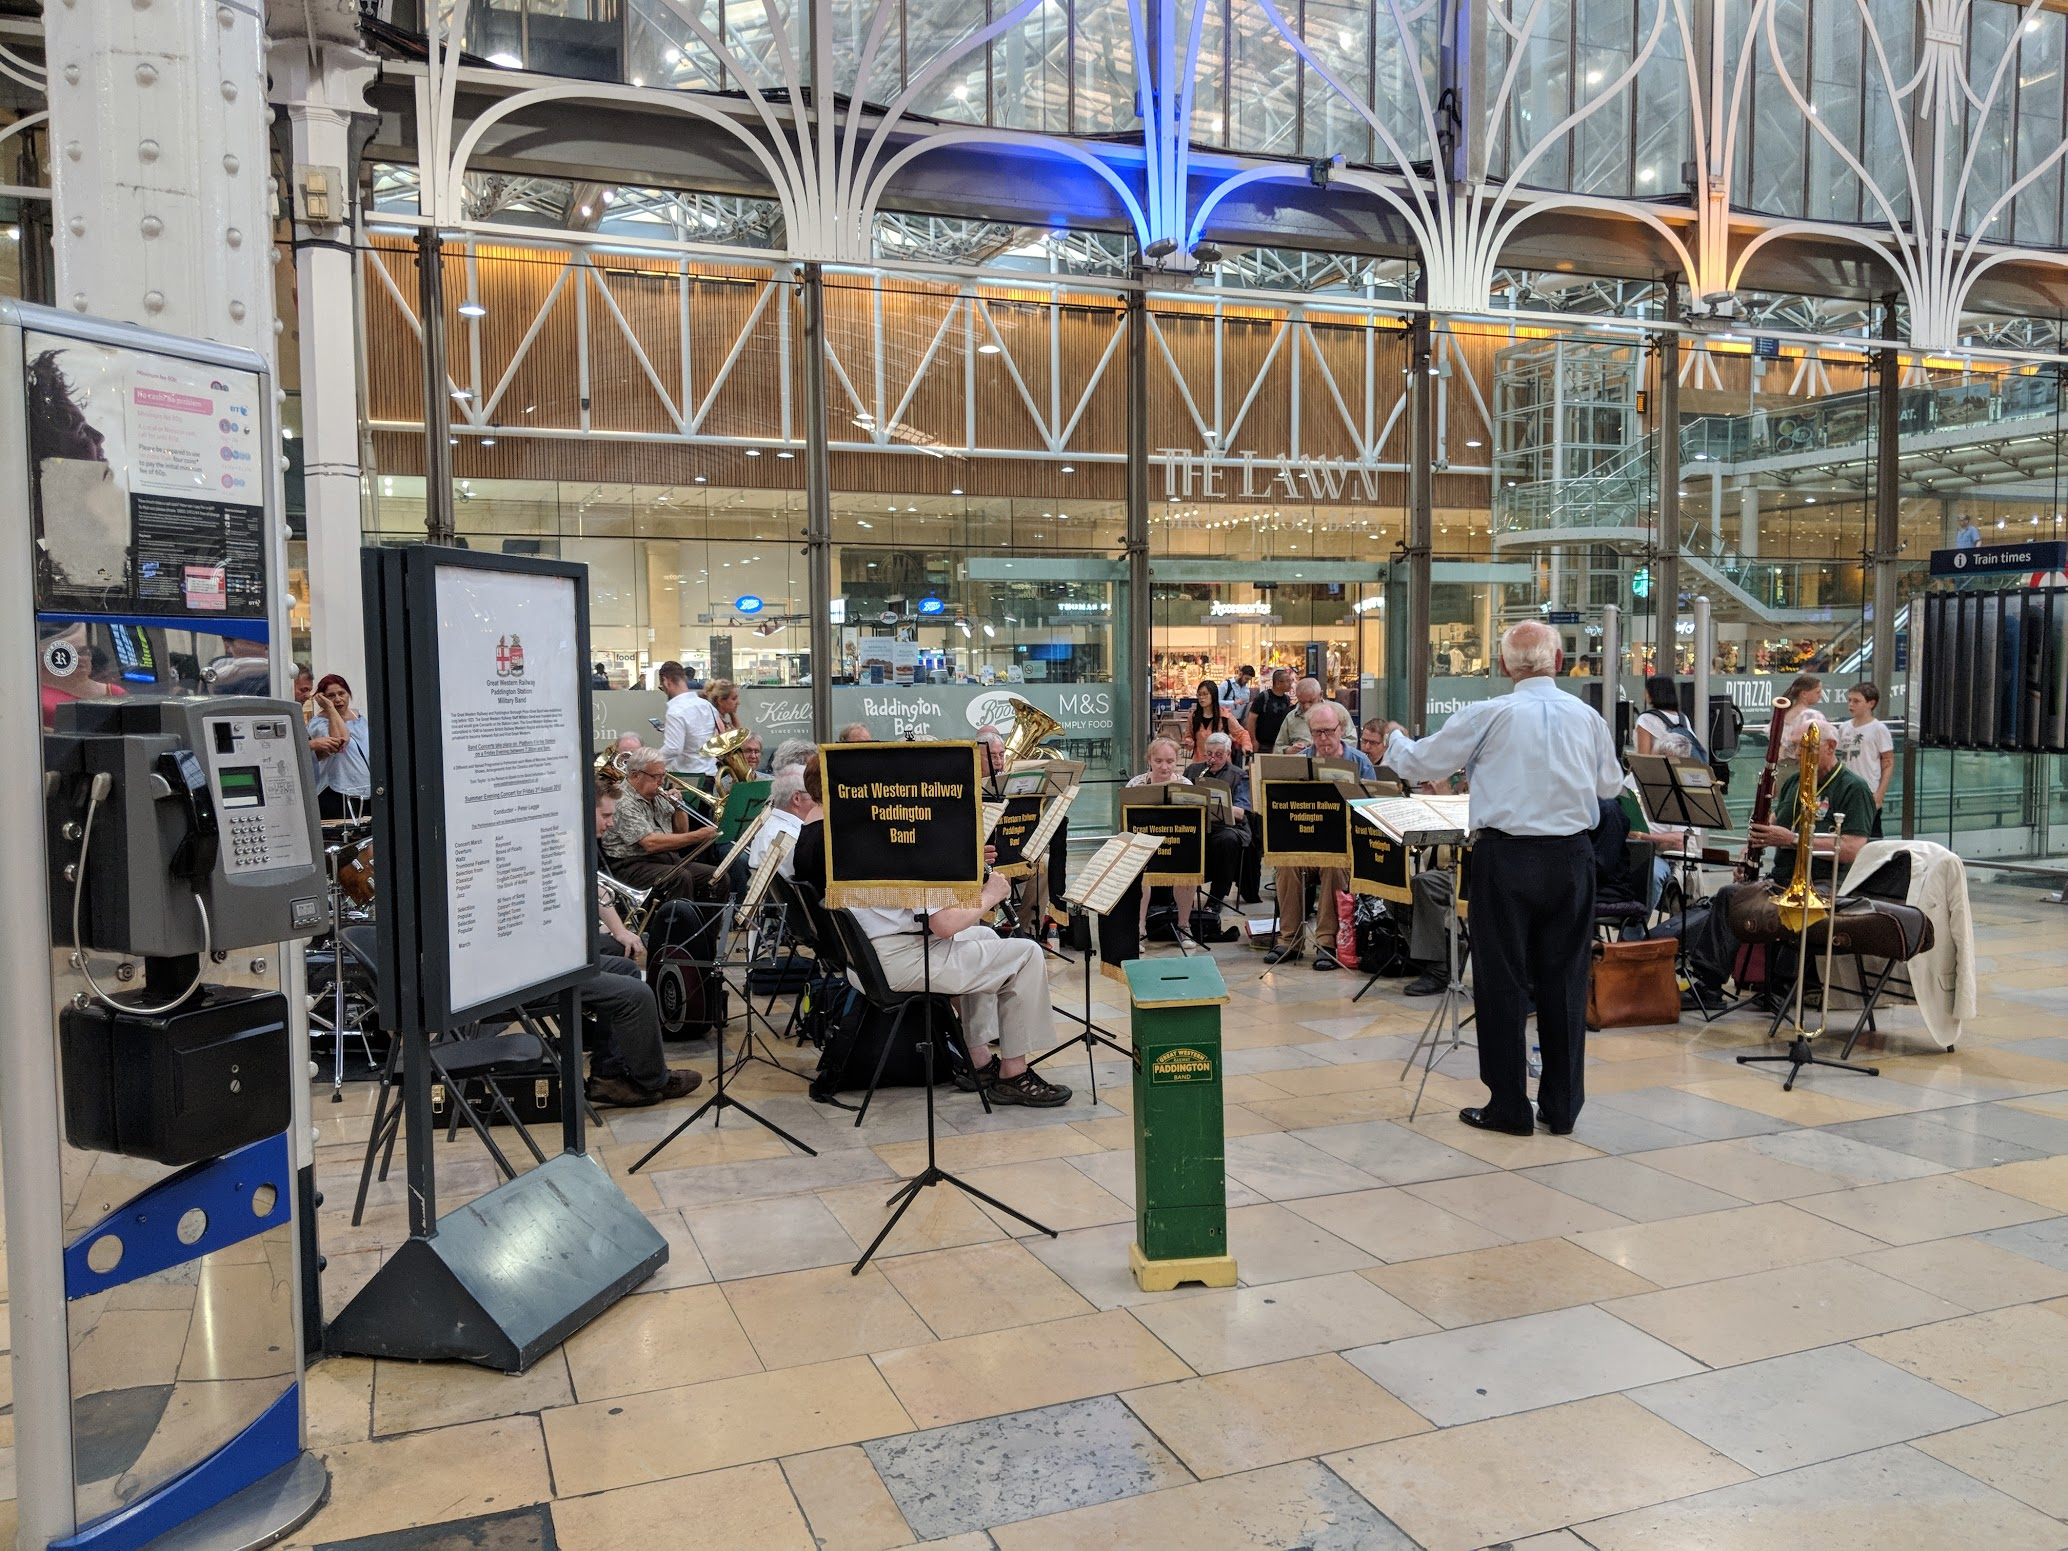 - A brass band playing live should start off all railway journeys